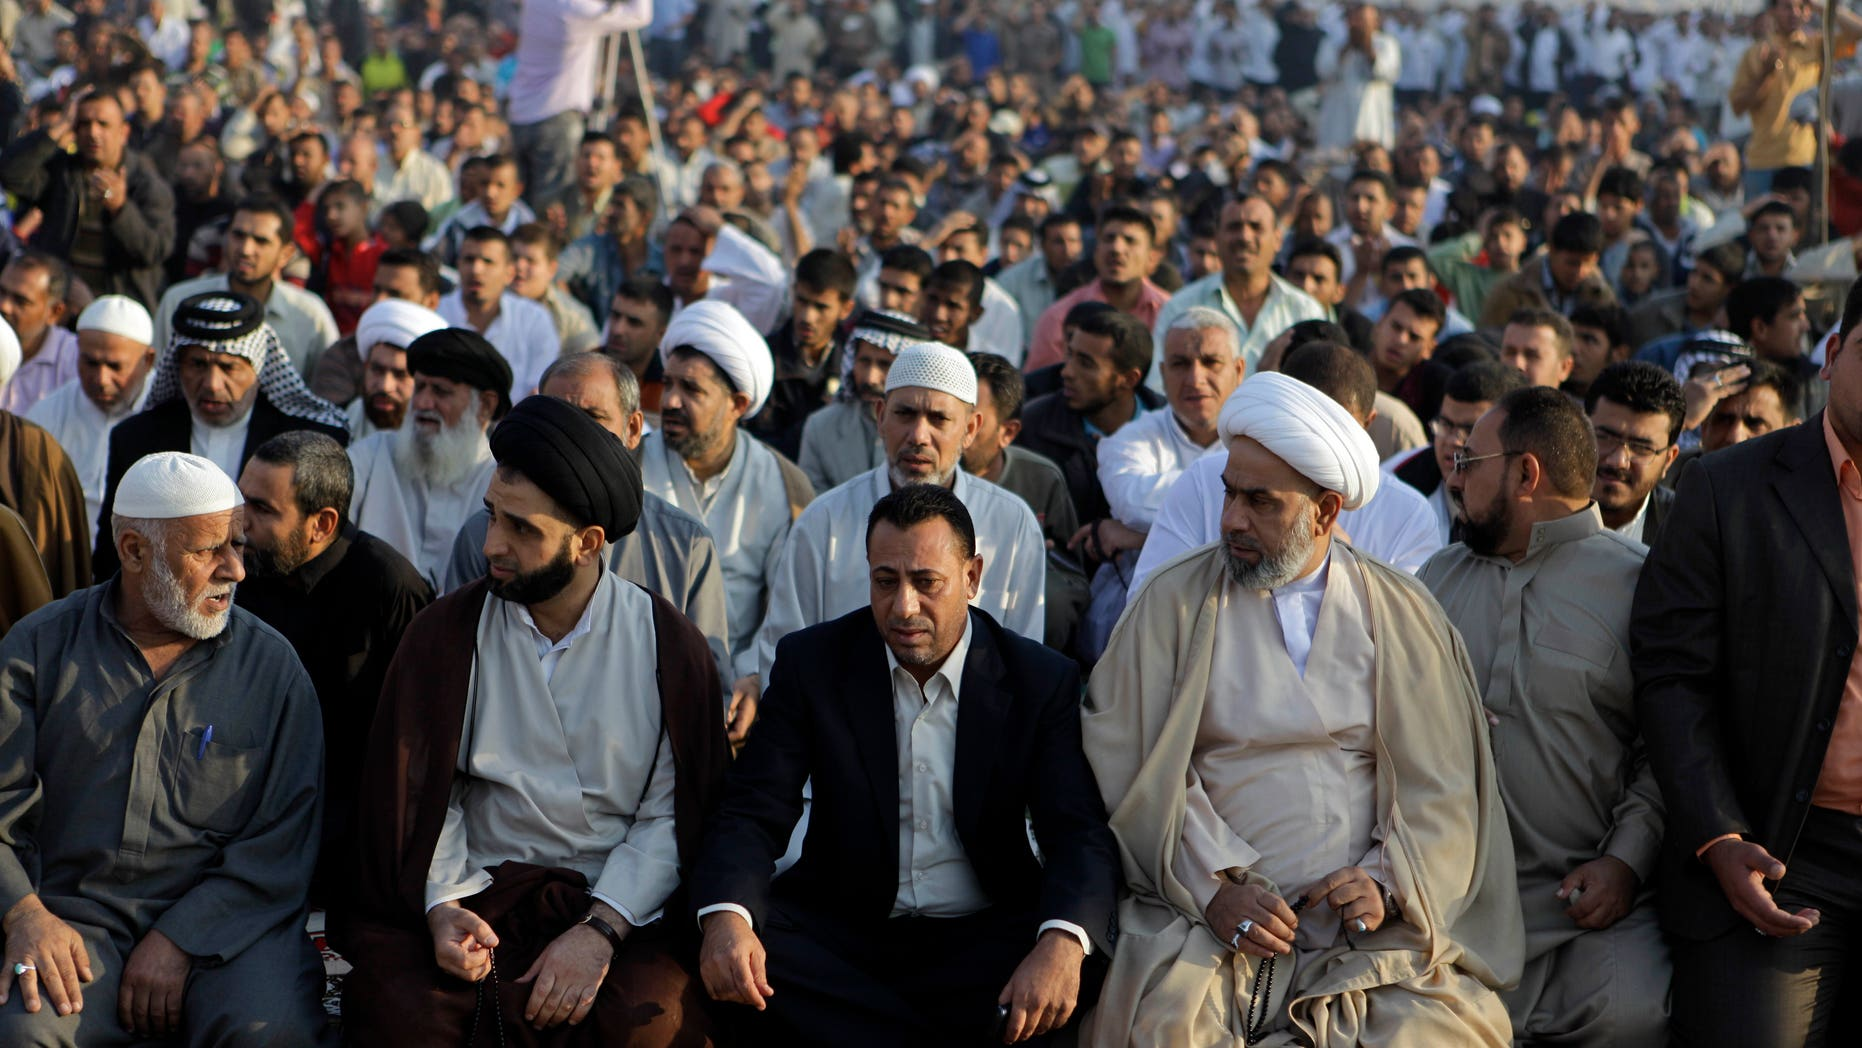 File photo showing followers of radical Shiite cleric Muqtada al-Sadr crowding a street as they attend open air Friday prayers in Sadr City, Baghdad.